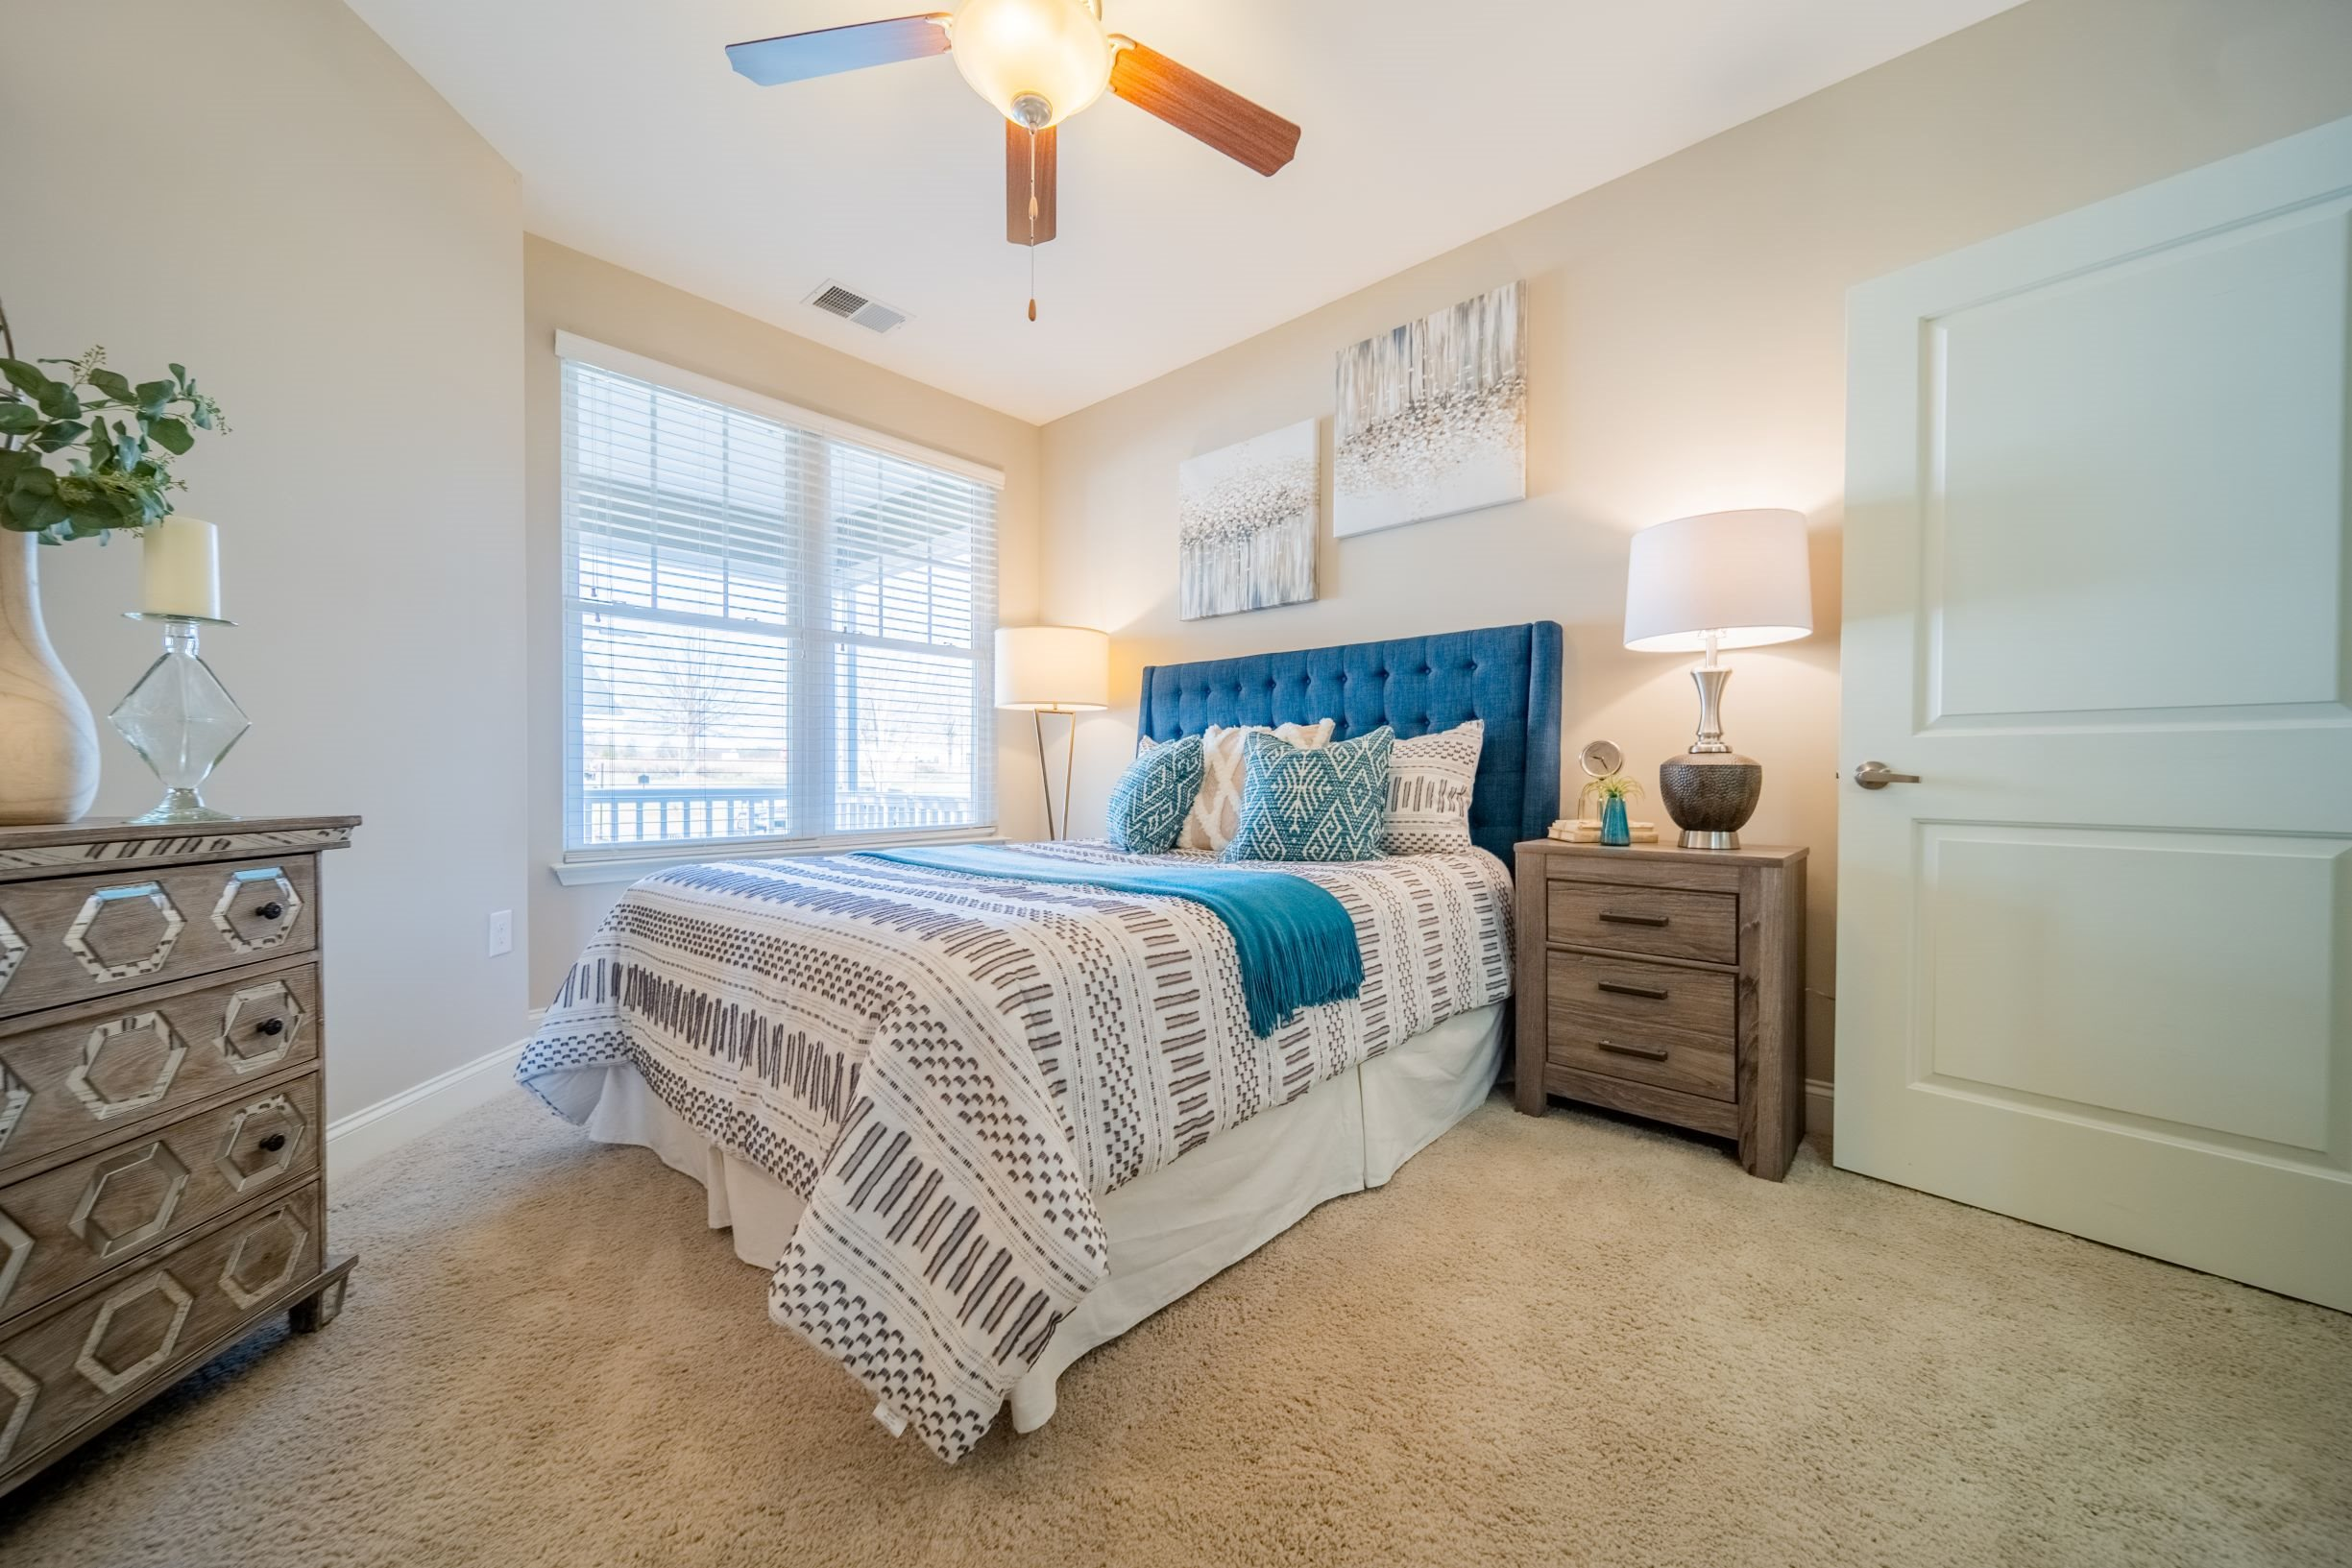 Beautiful bedroom with plush carpeting, lighted ceiling fan and oversized window at Piedmont Place in Greensboro, NC